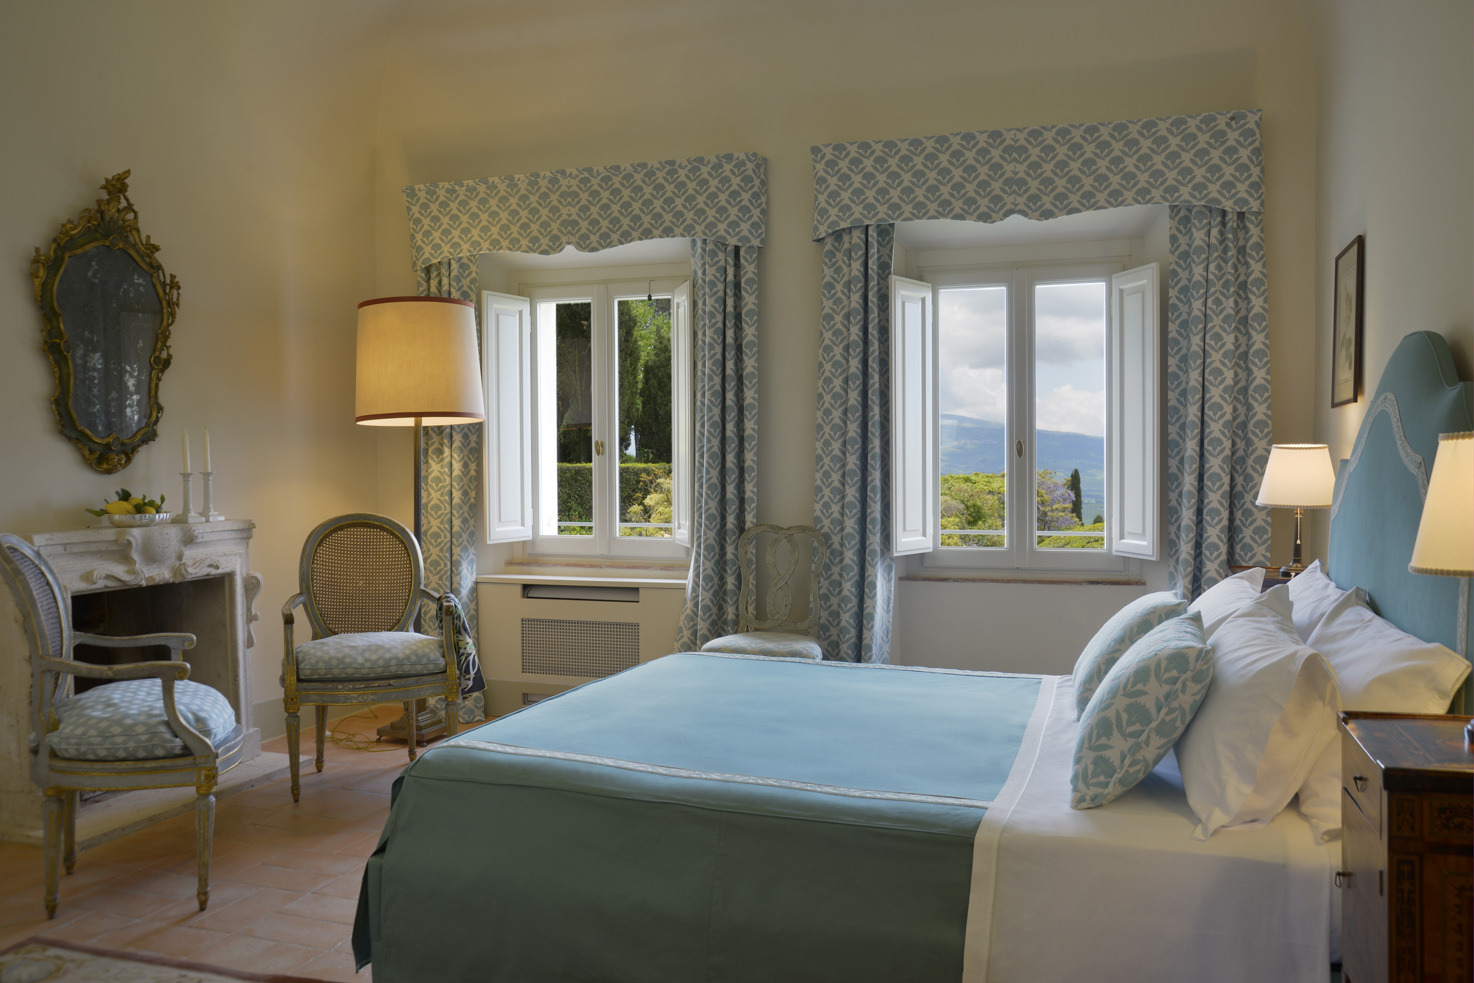 Bedroom with view over the Tuscan hills